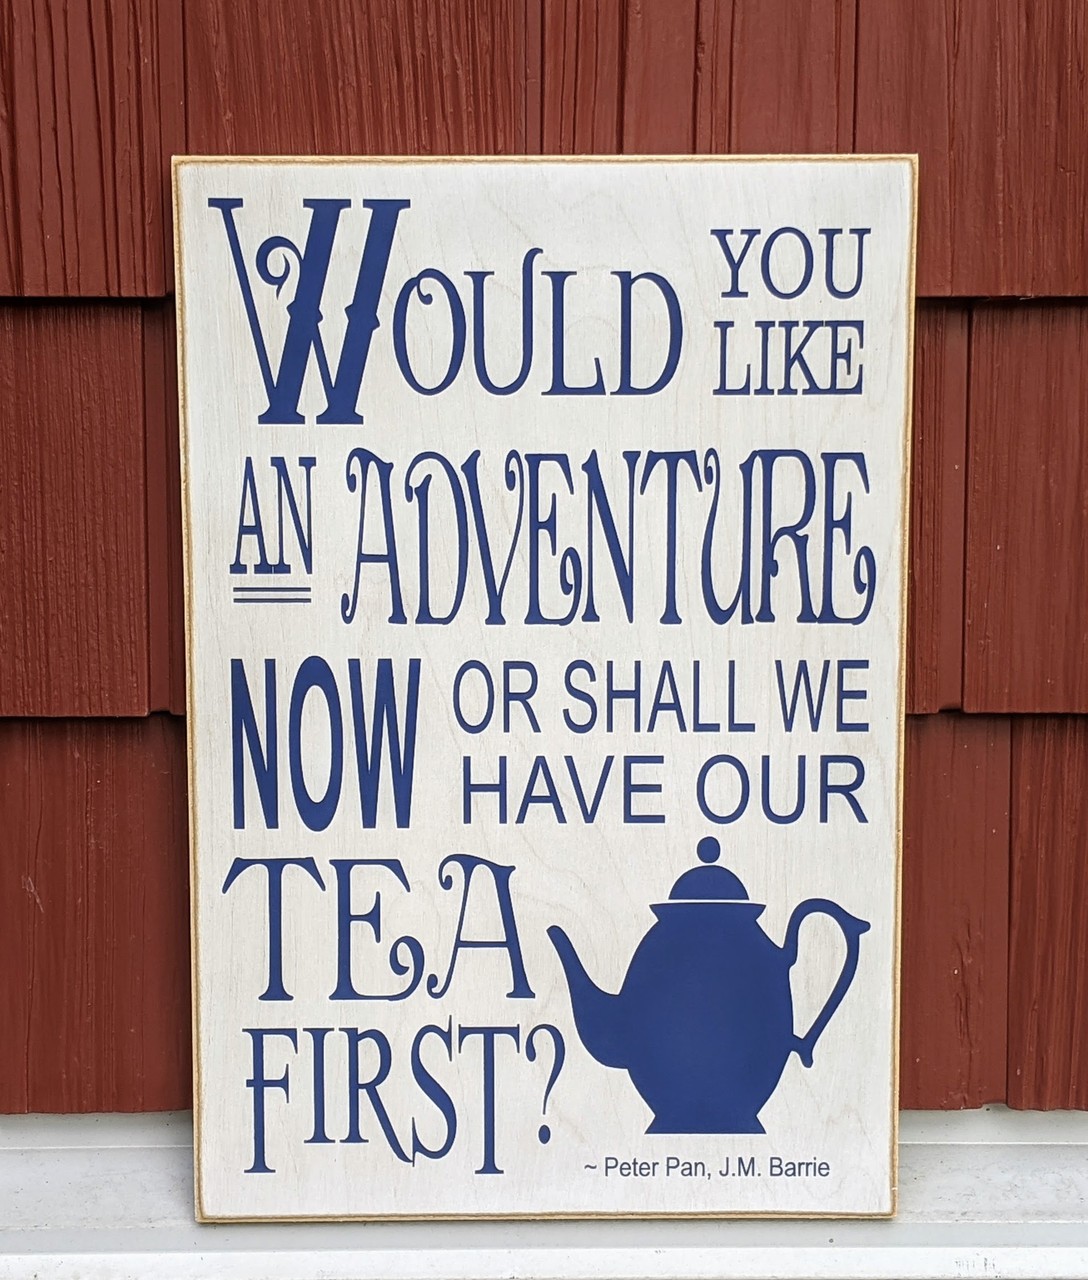 Would you like an adventure now or shall we have our tea first?